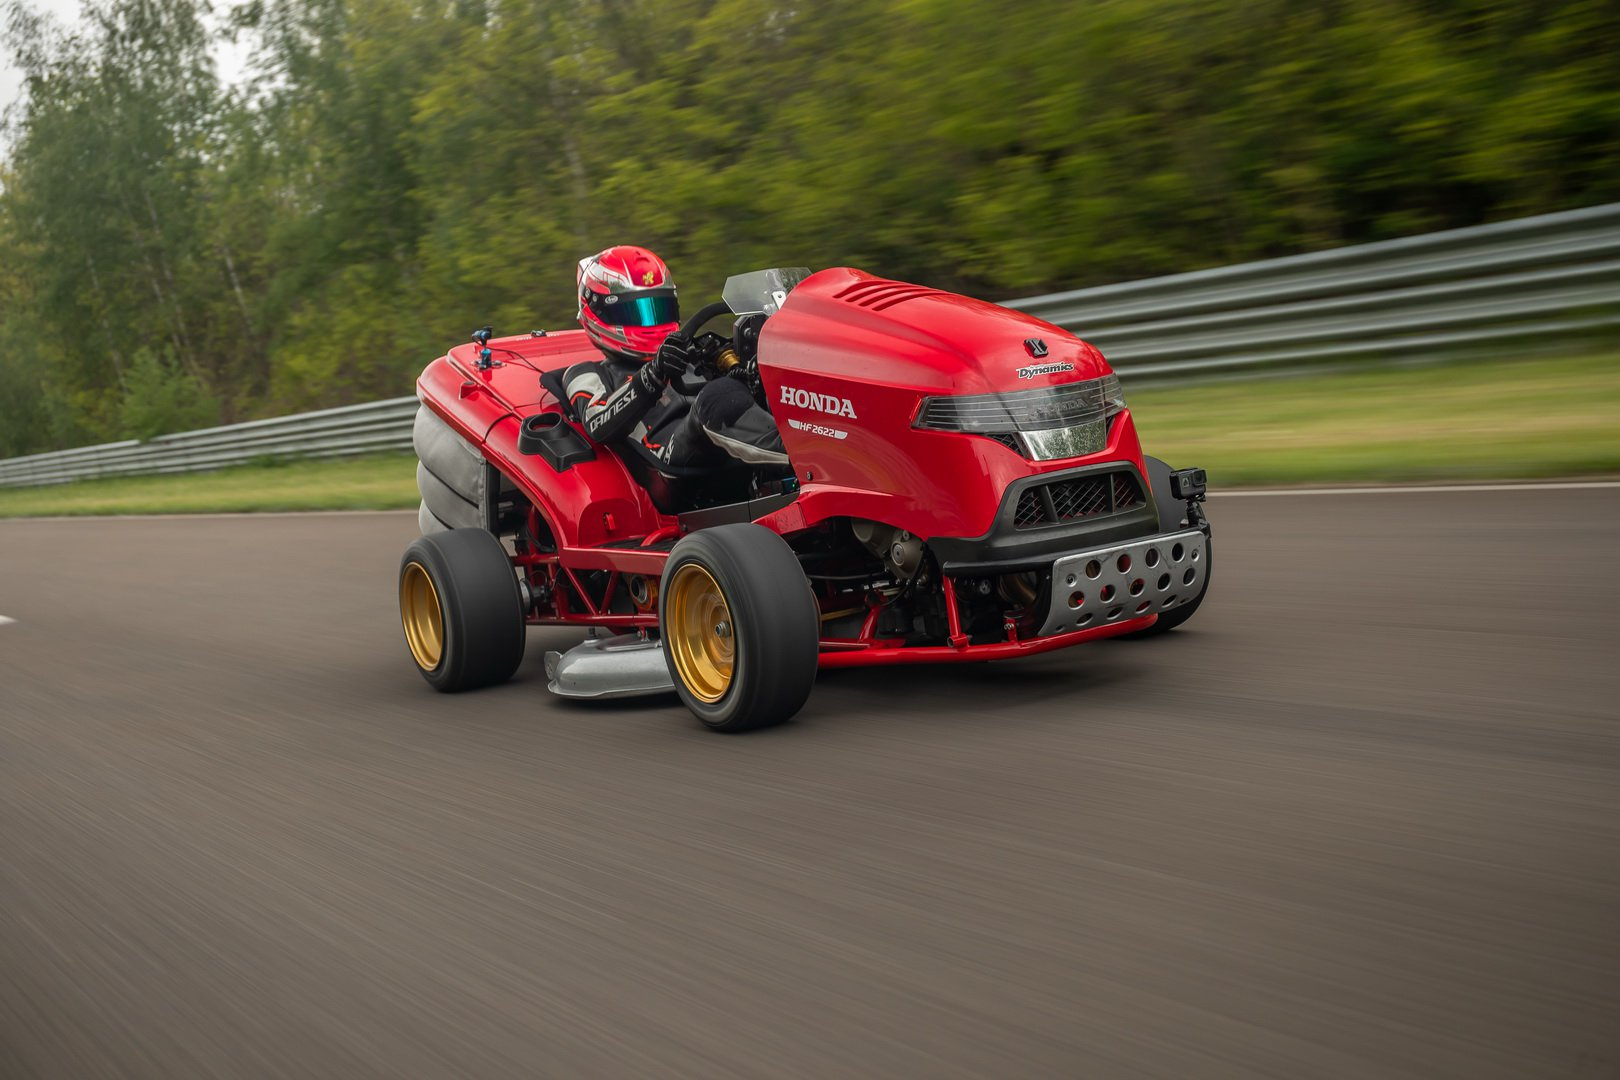 98d8decd-honda-mean-mower-v2-record-2